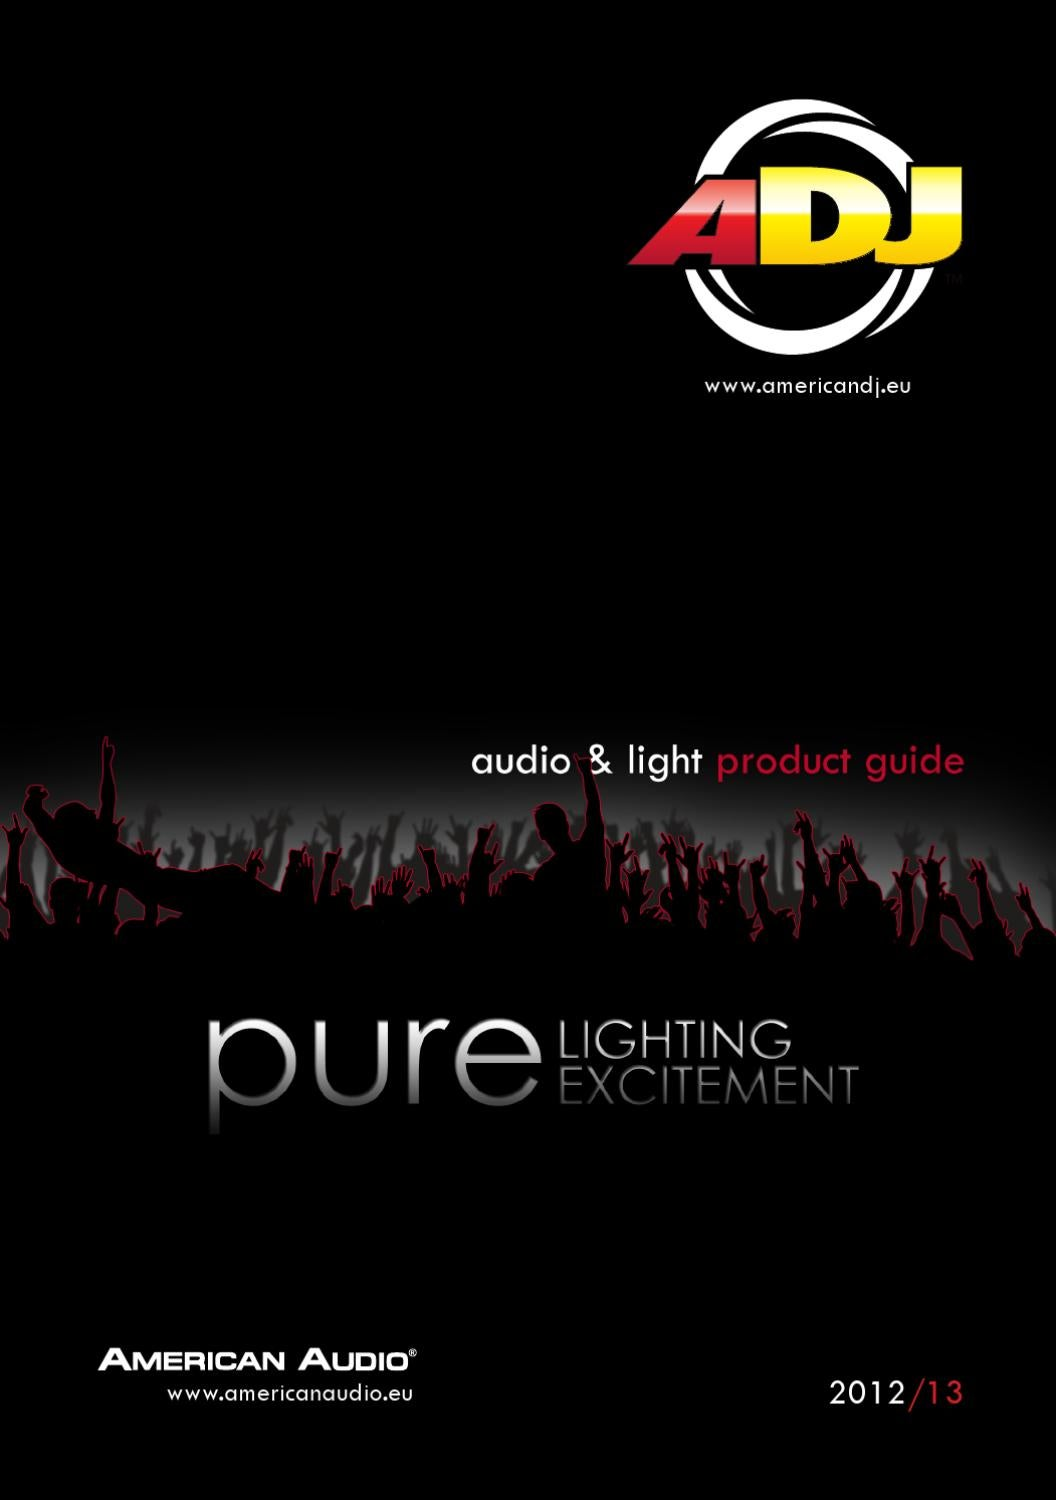 E27 Led Lamp Idual G100 Met Afstandsbediening 16w Adj Catalog 2012 13 By A D J Group Issuu